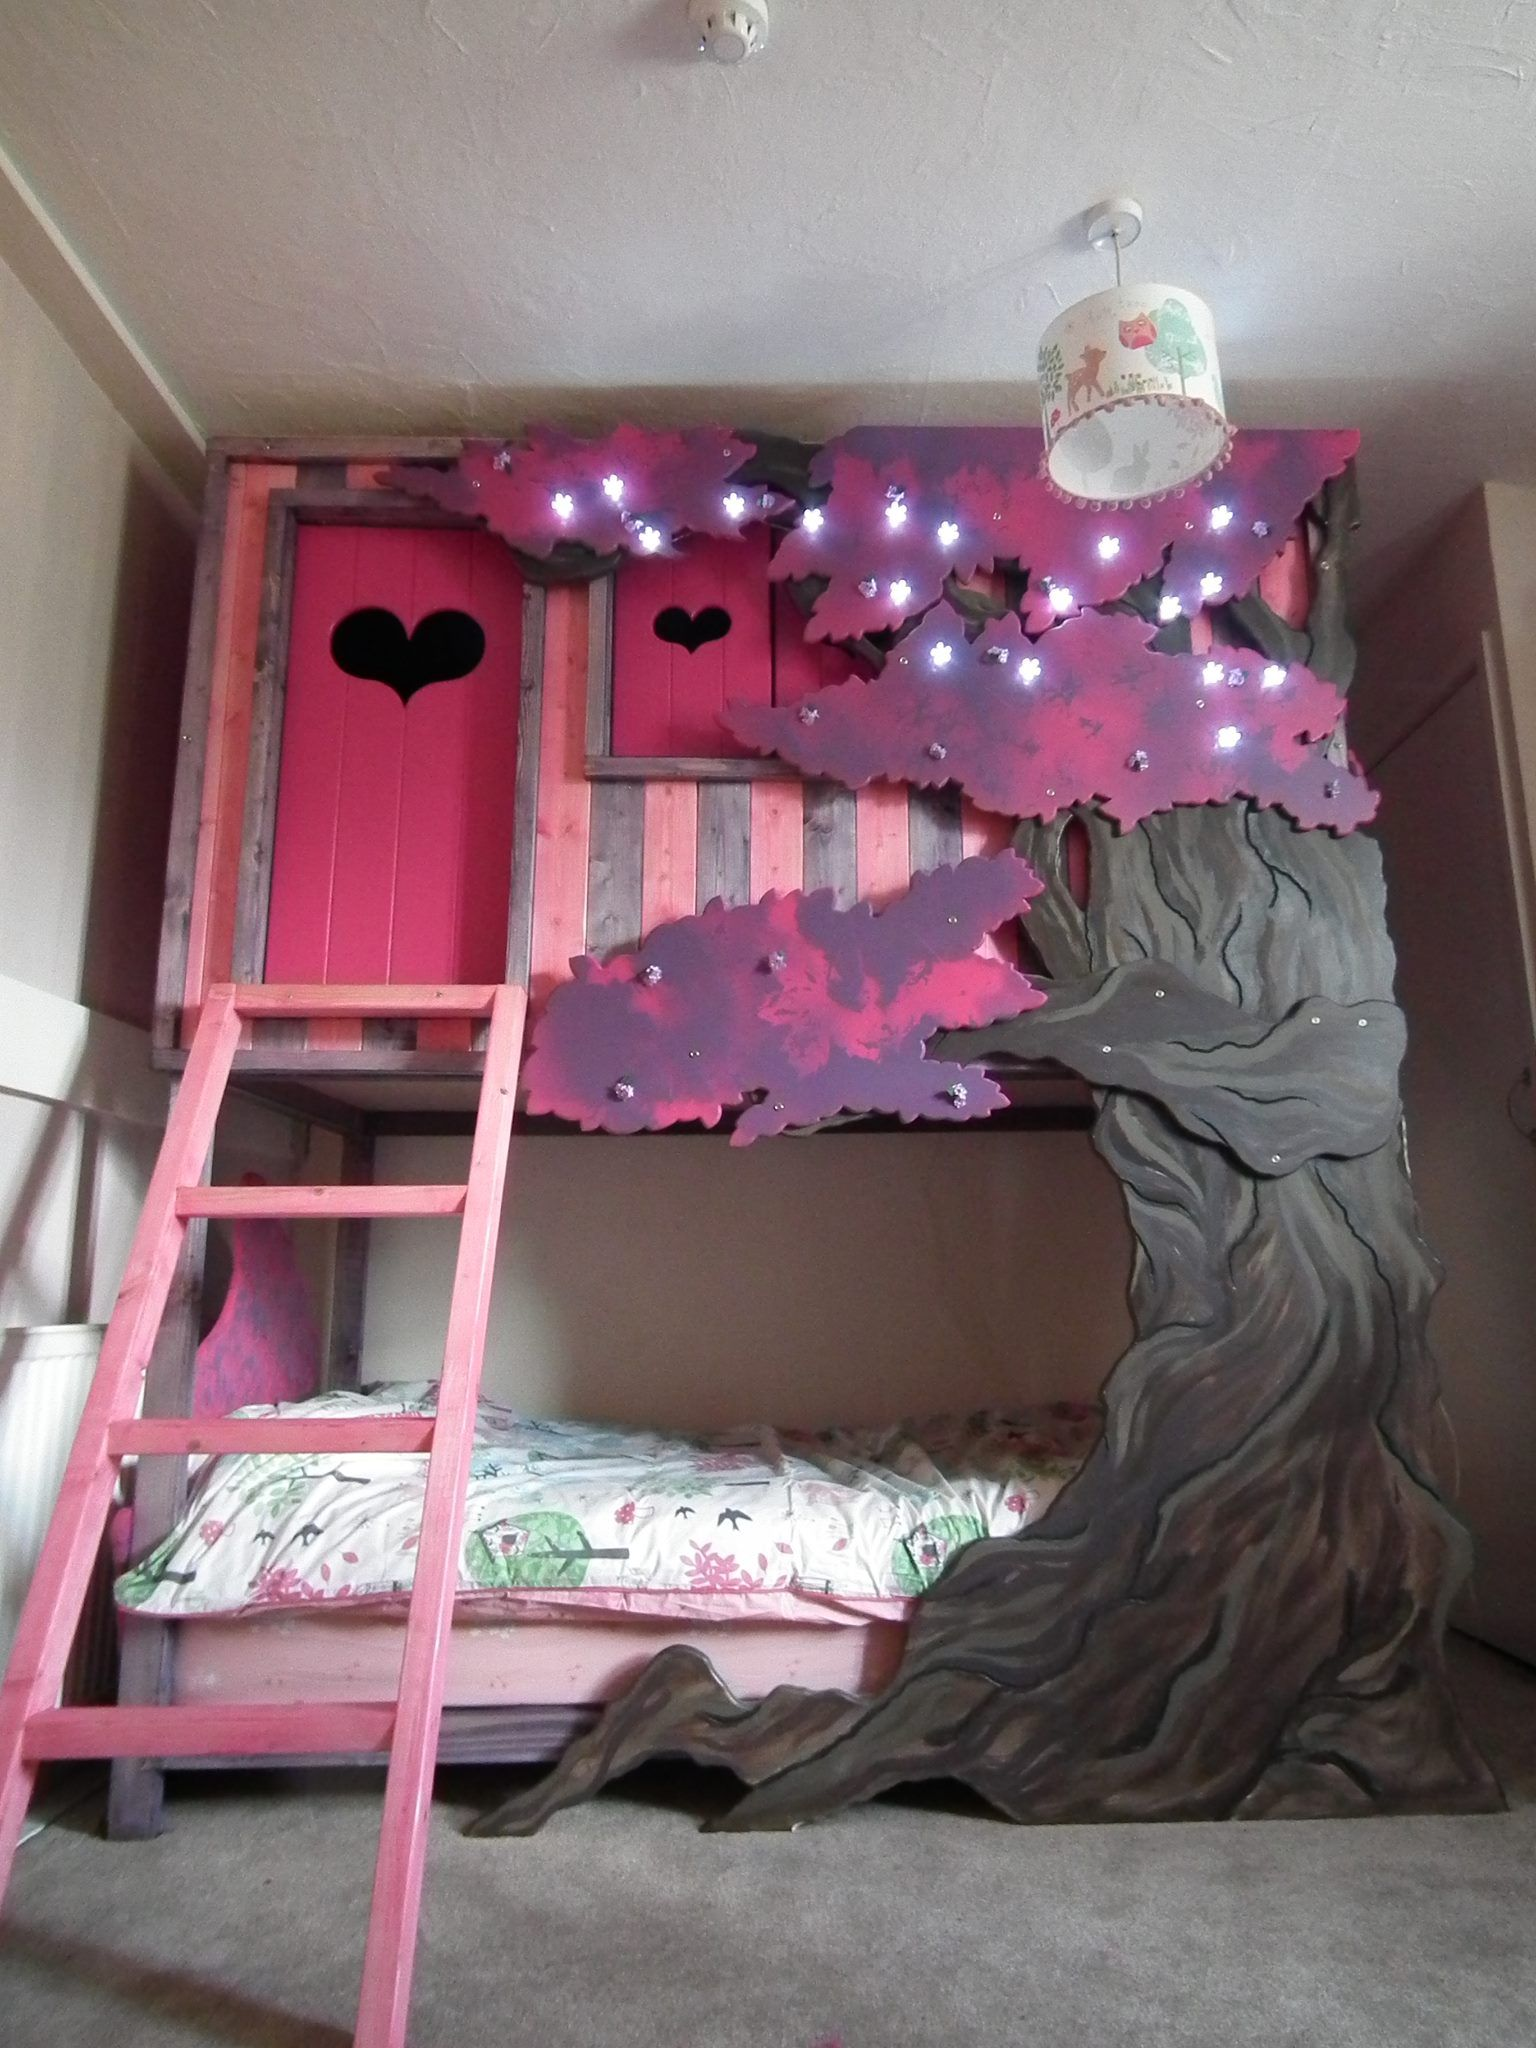 Tree House Bed By Dreamcraft Furniture Www.facebook.com/dreamcraftfurniture